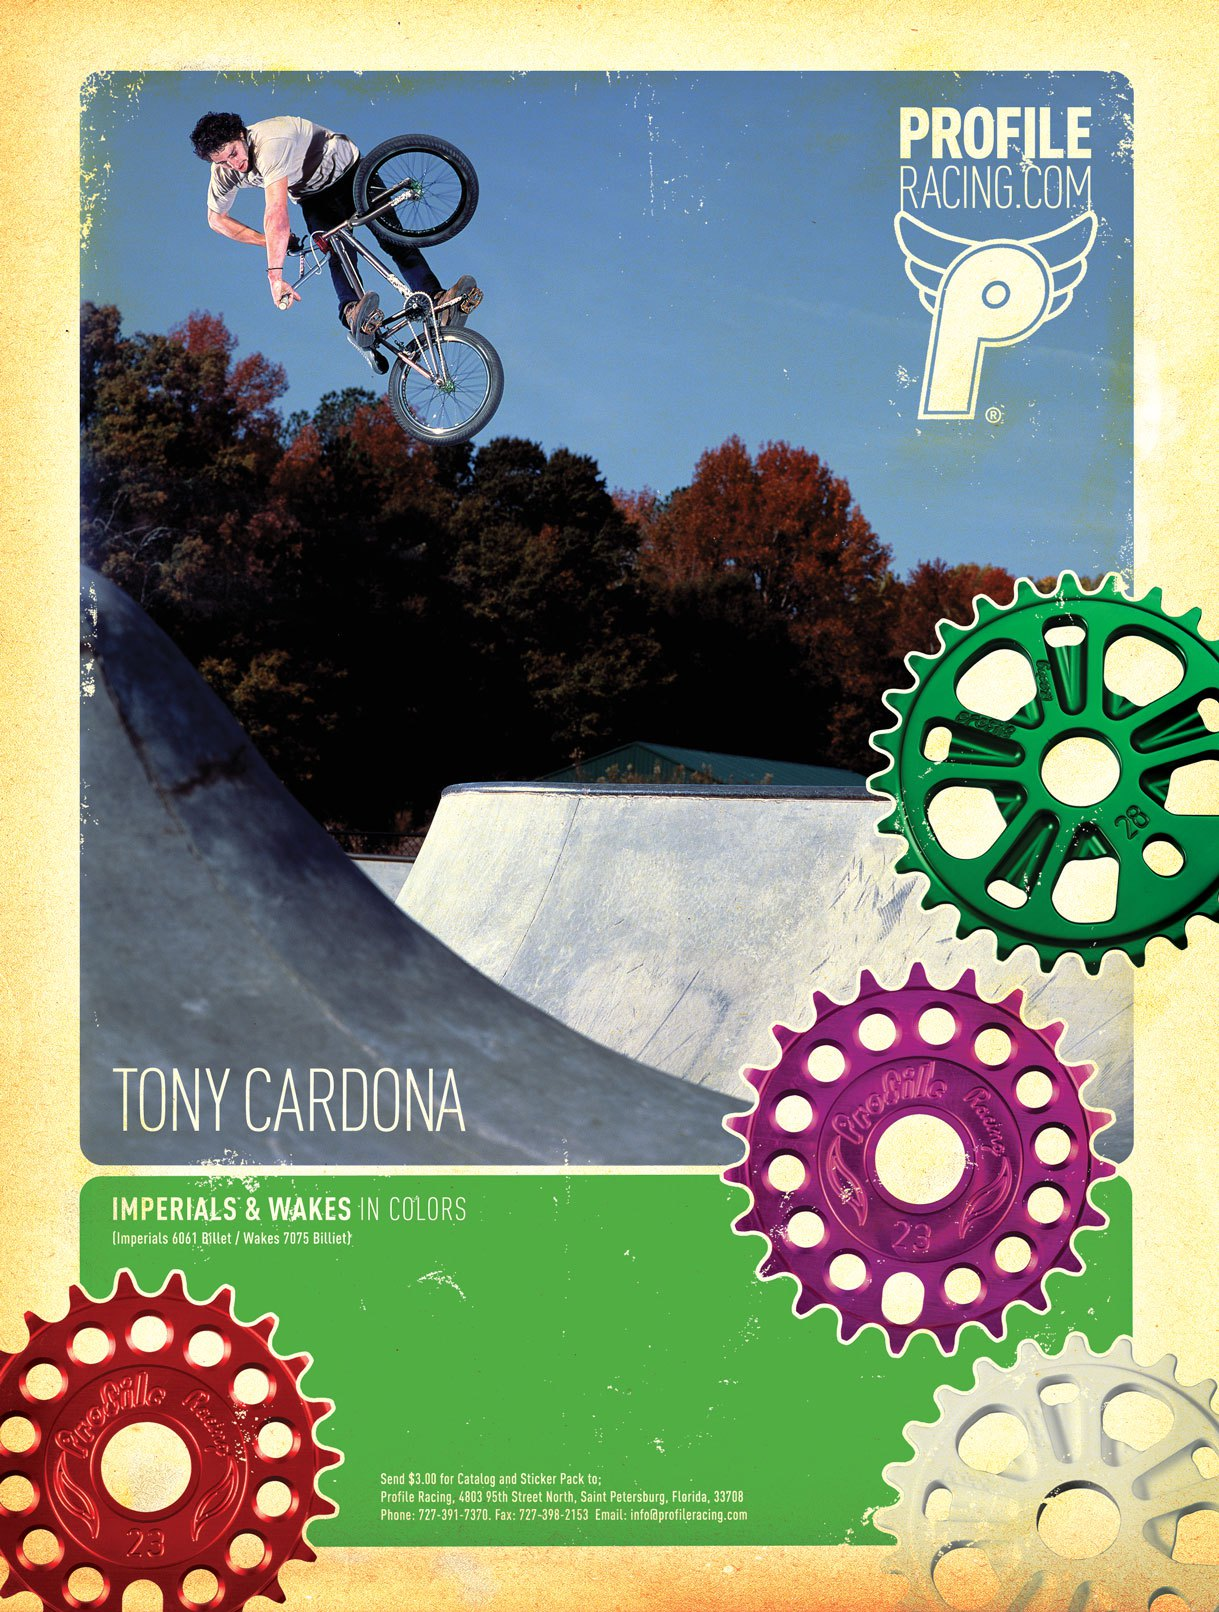 Tony Cardona - Photo by Dolecki